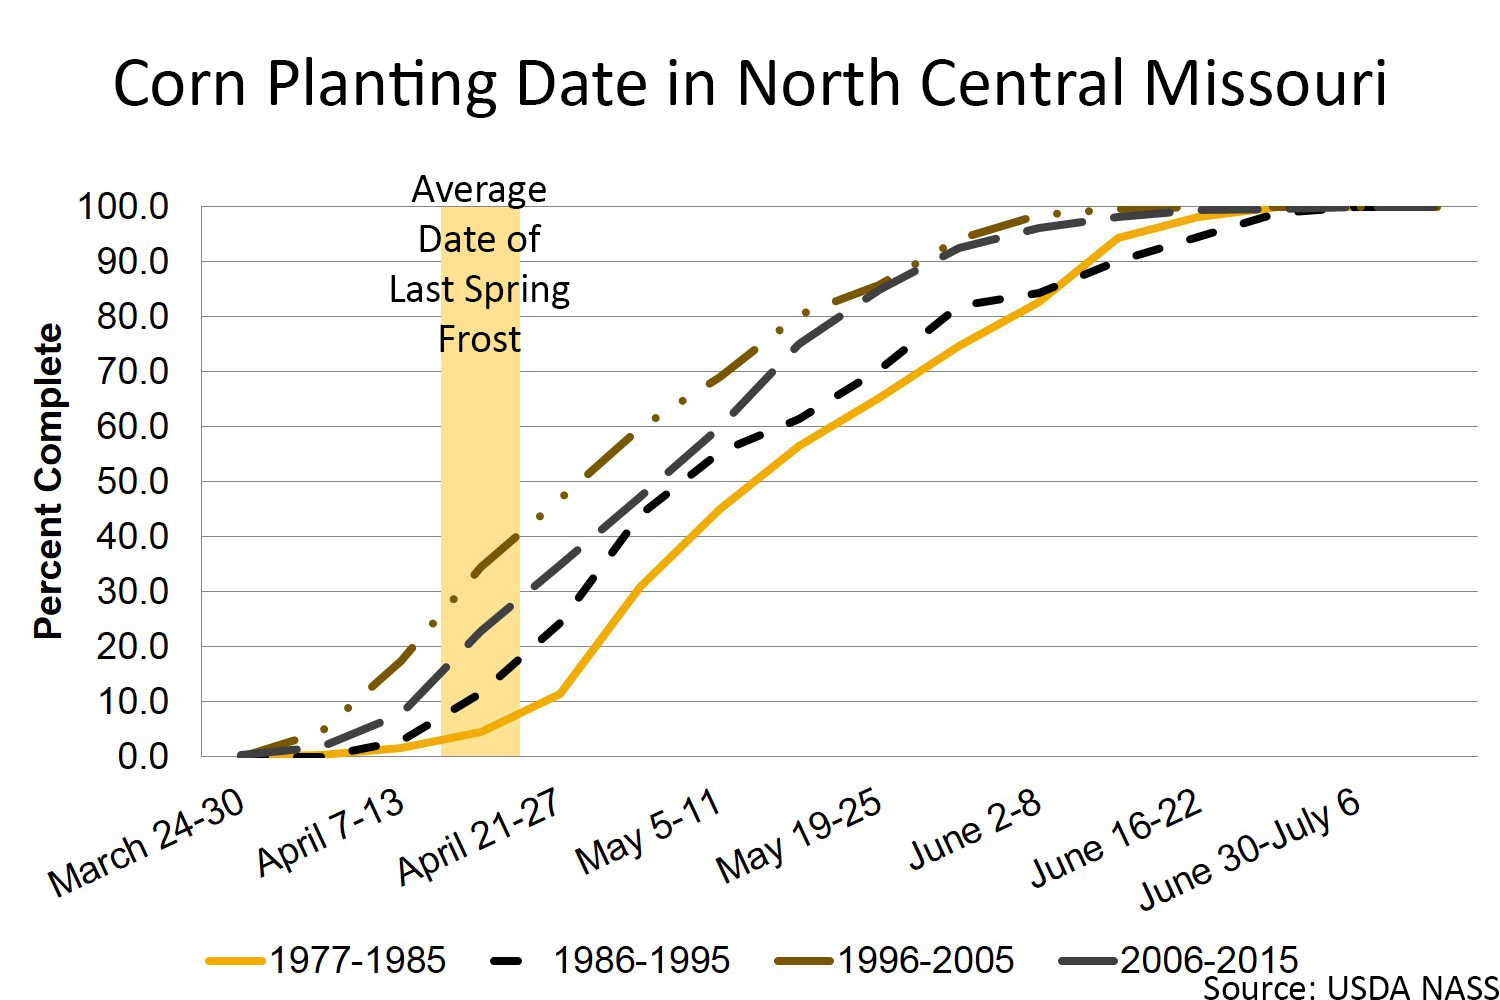 Corn planting date in north central Missouri chart